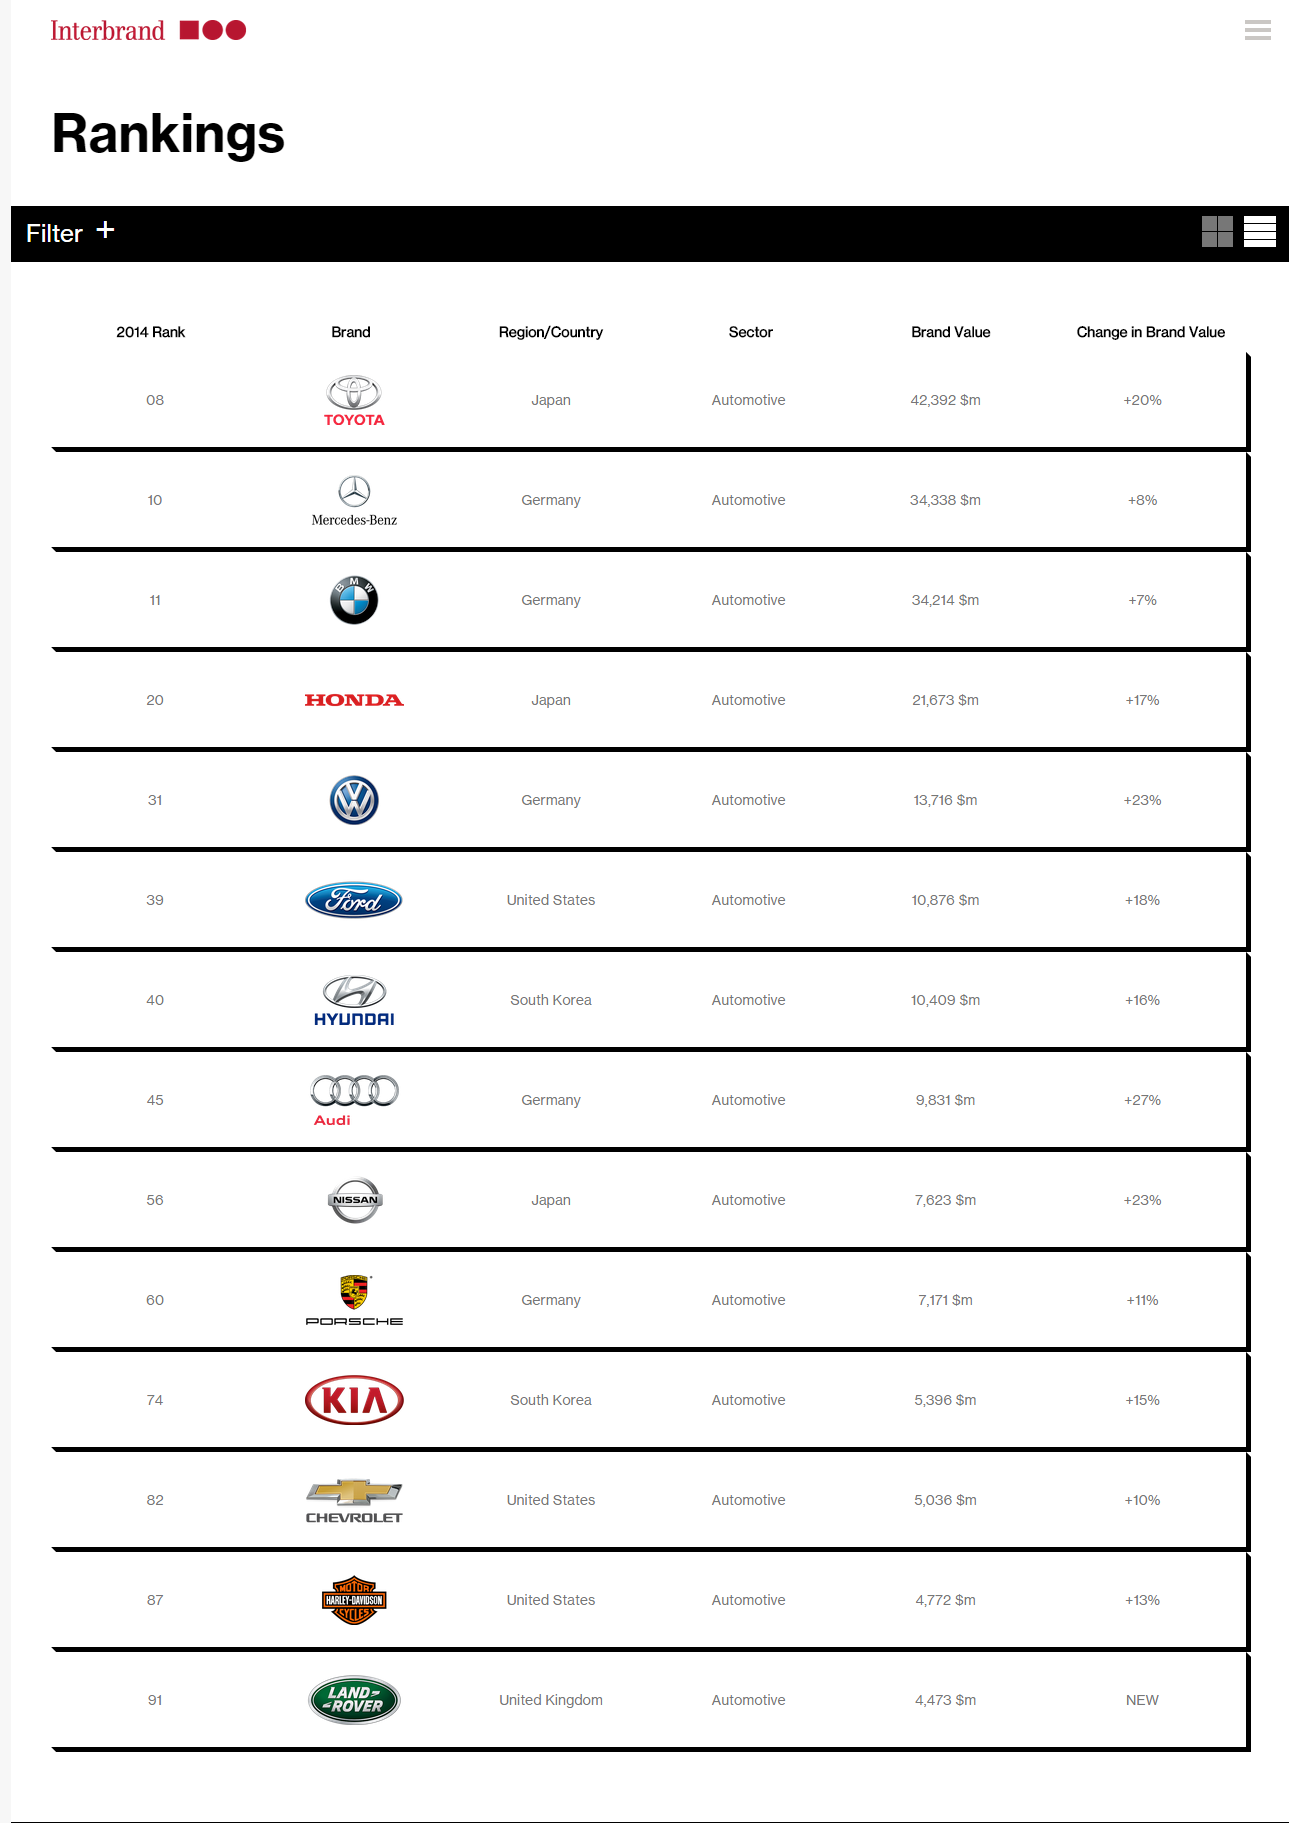 Interbrand List of Top Automotive Brands 2014